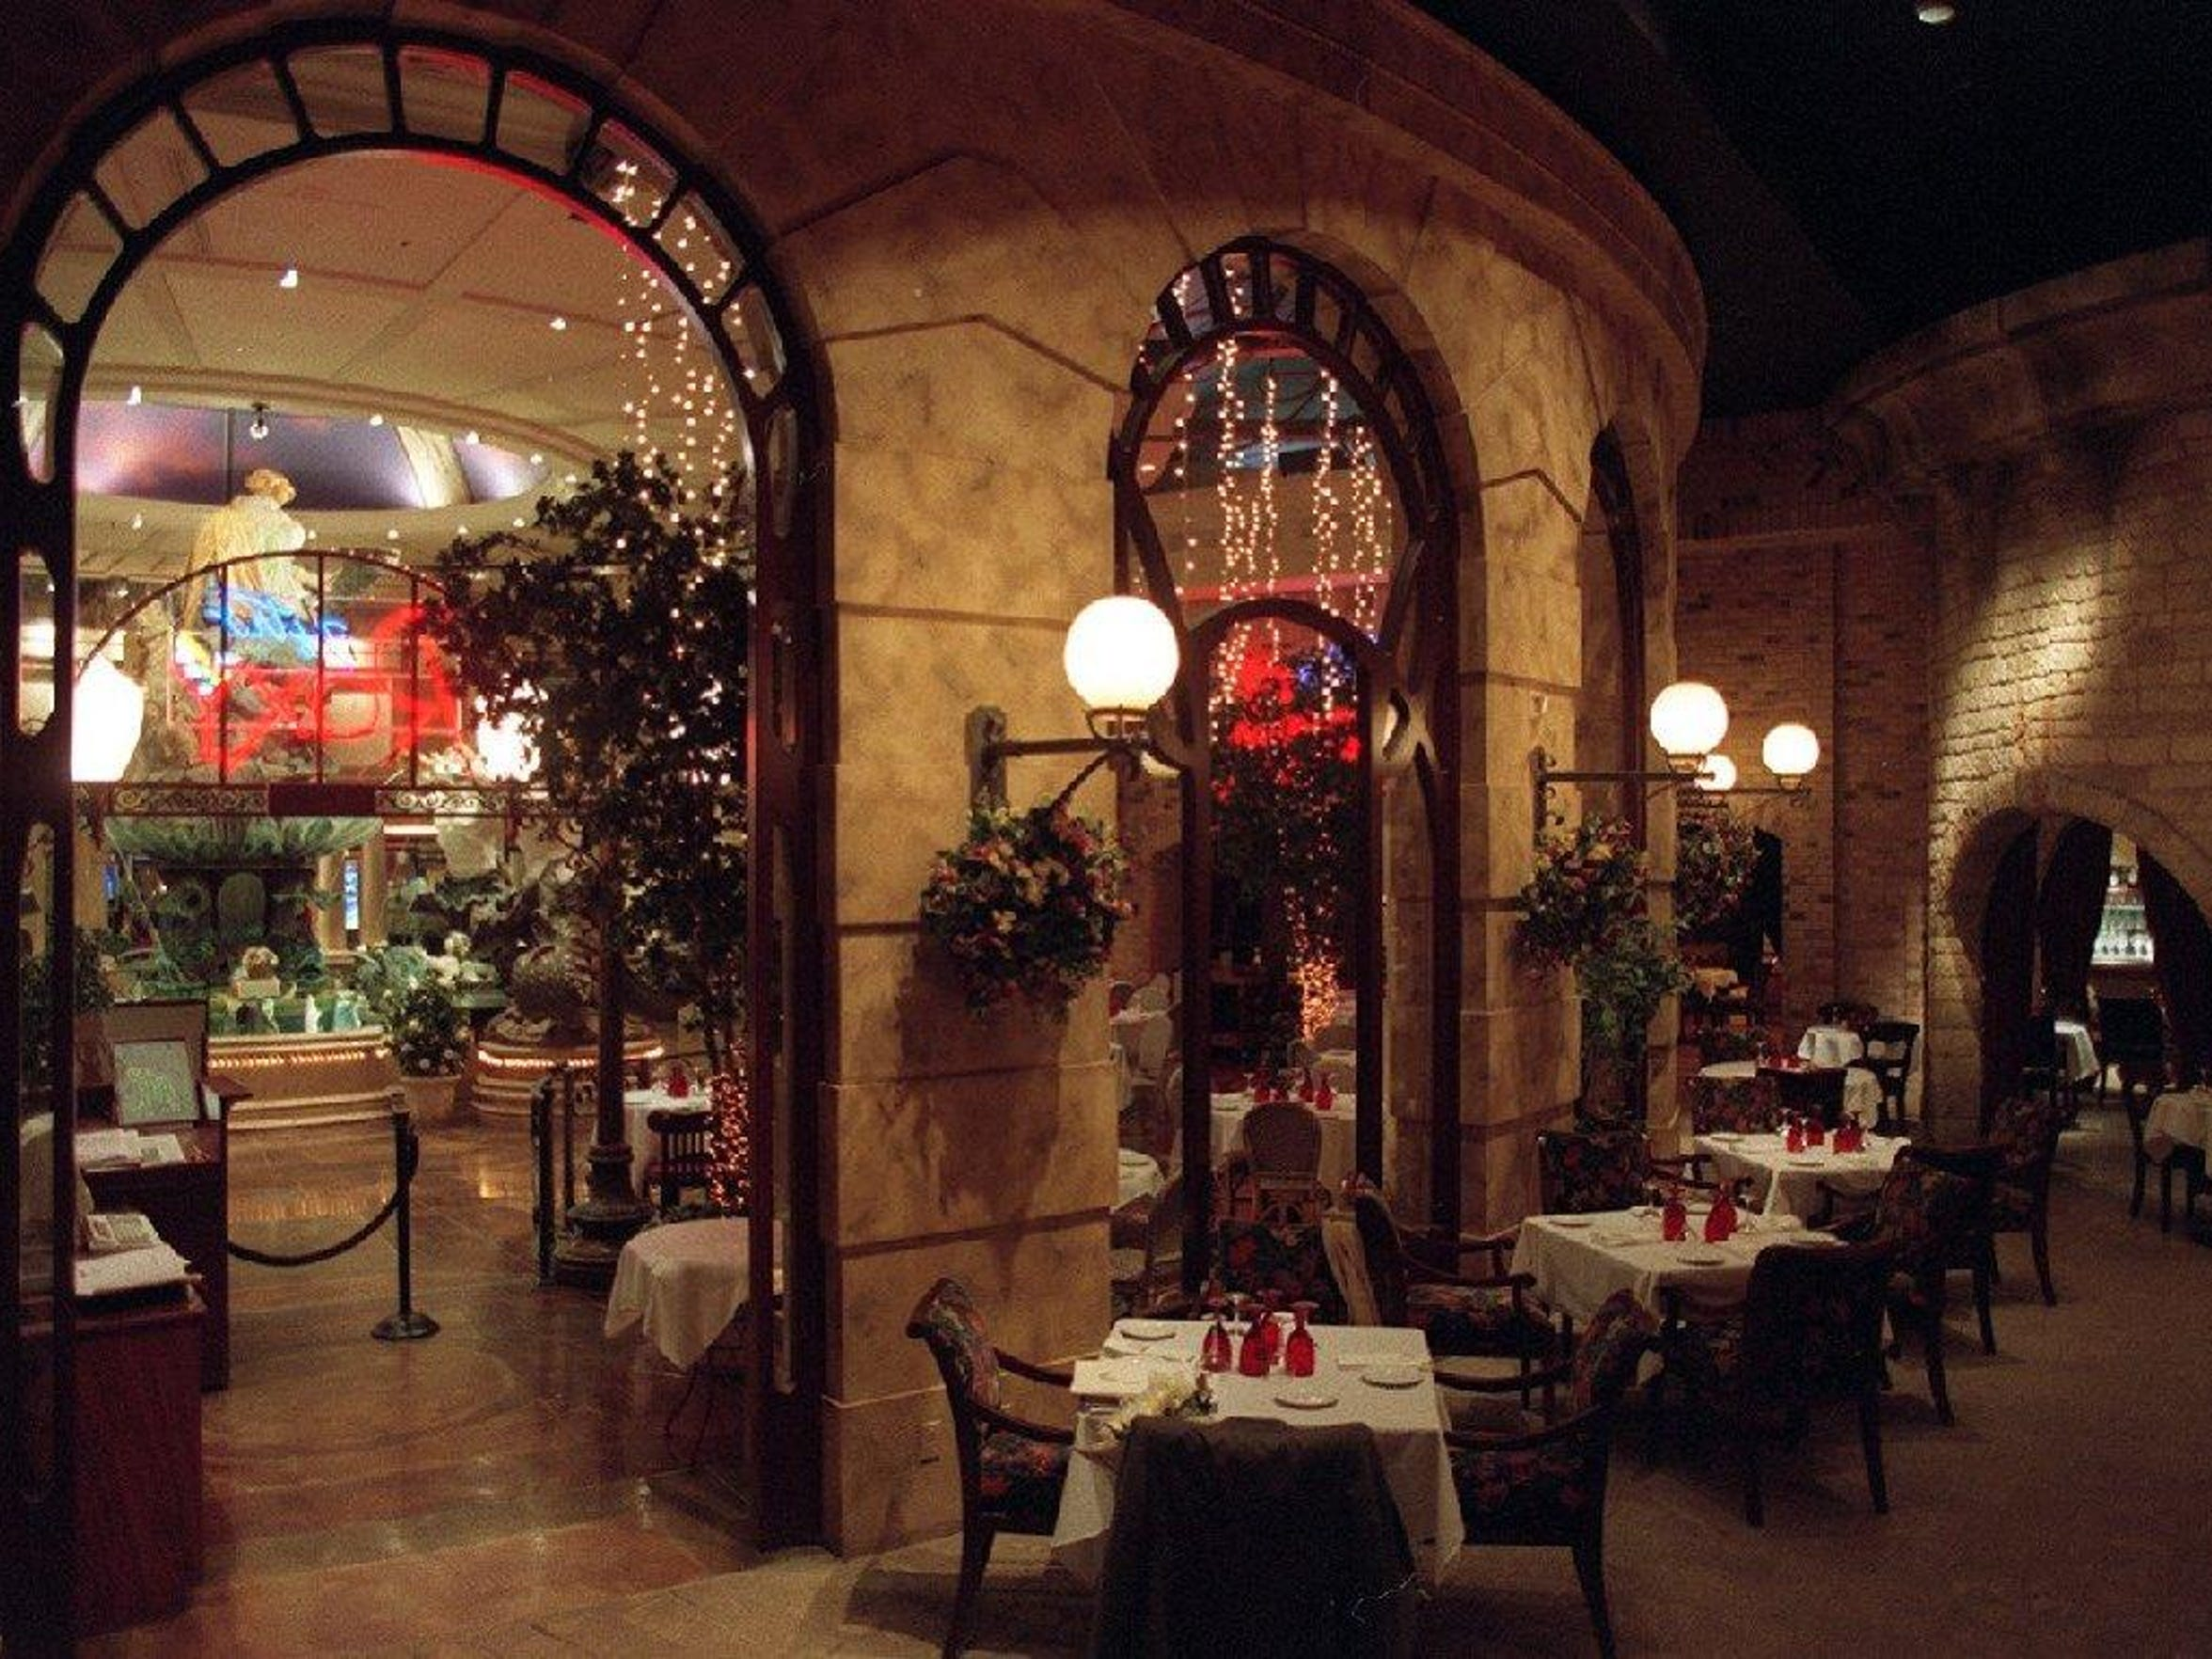 The late Don Carano raised the bar for Reno dining when he opened Bistro Roxy (now Roxy) in 1996. The restaurant, still open, features seven different architectural styles inspired by Europe.